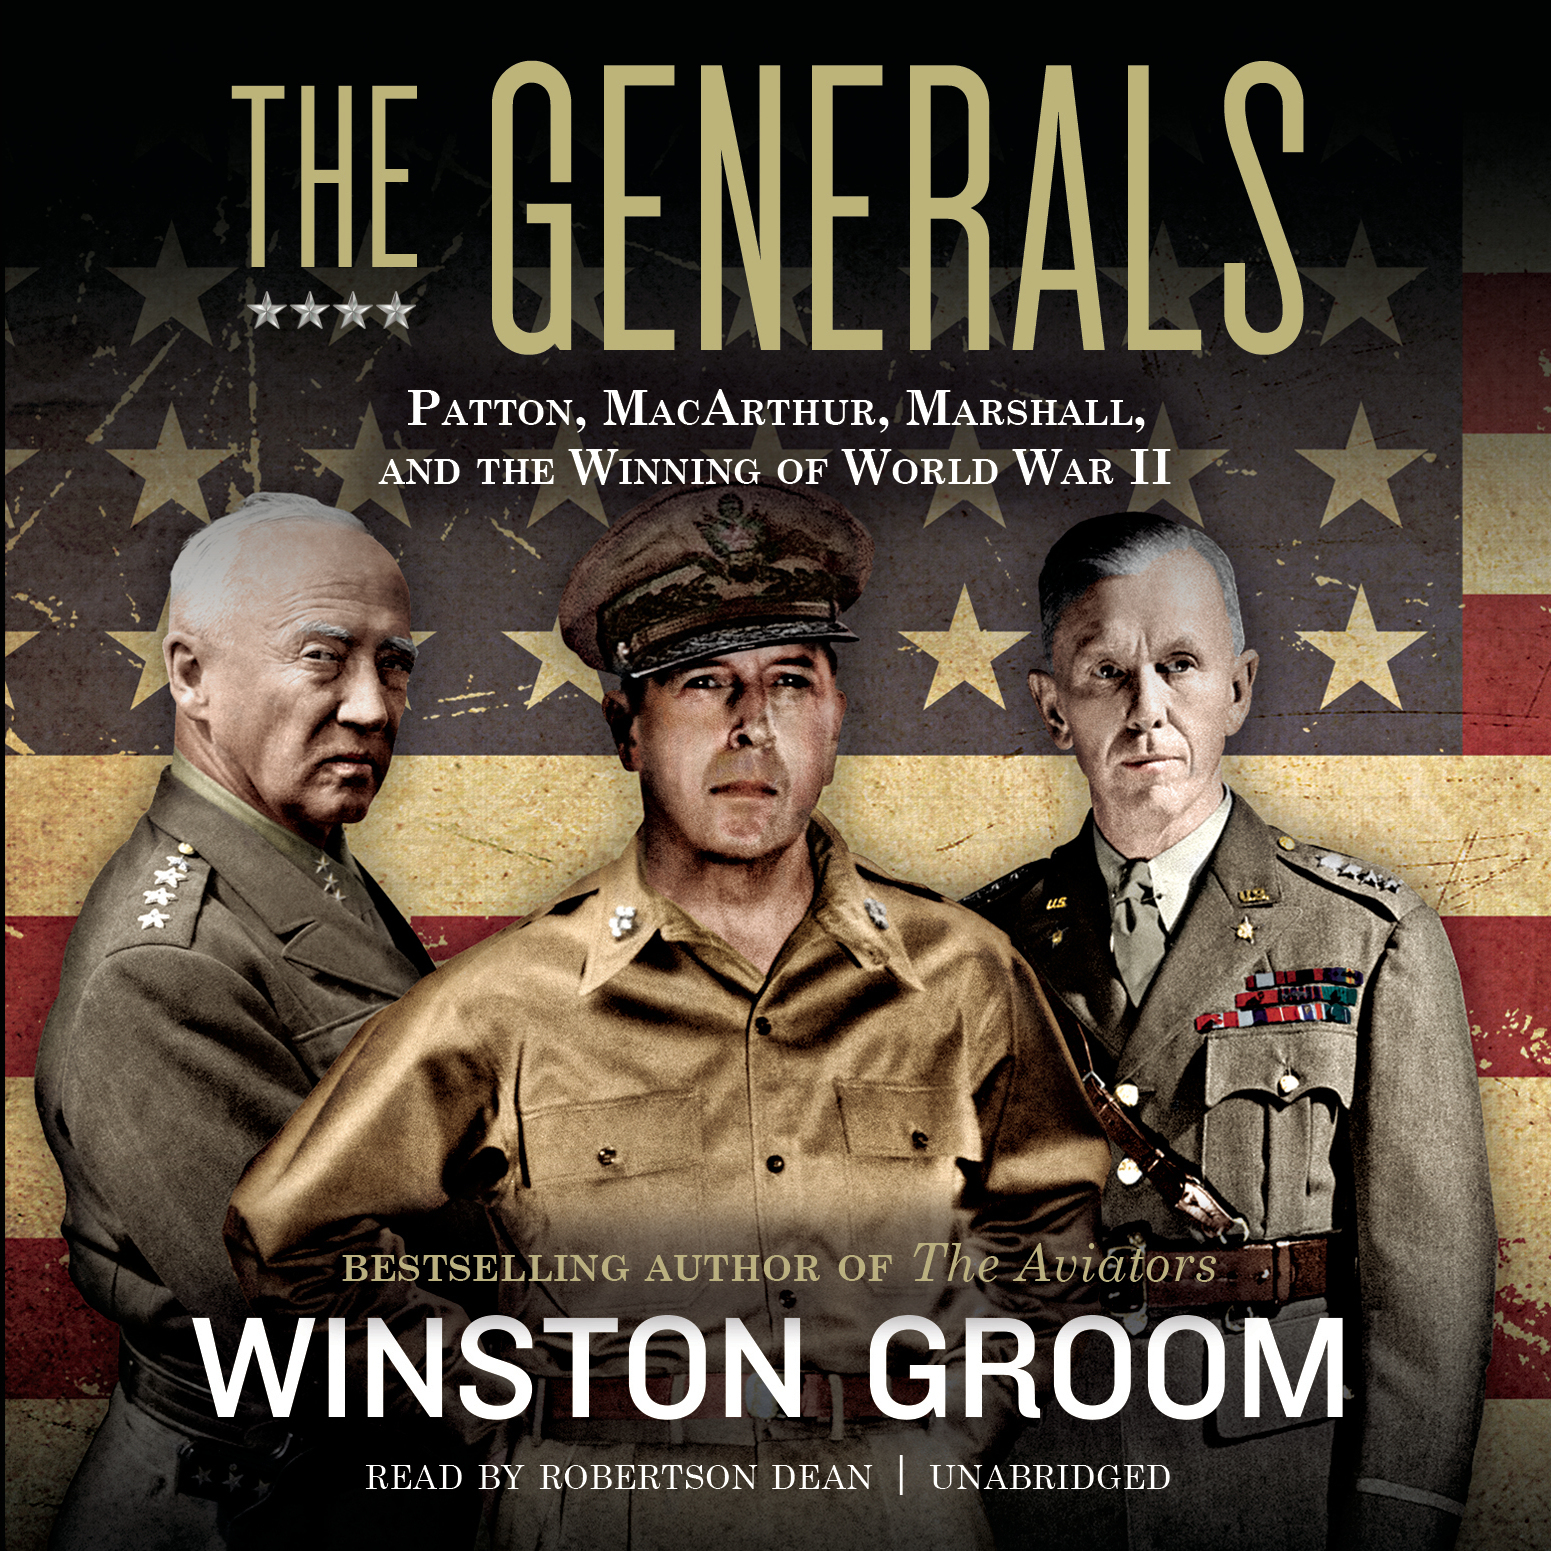 Printable The Generals : Patton, MacArthur, Marshall, and the Winning of World War II Audiobook Cover Art